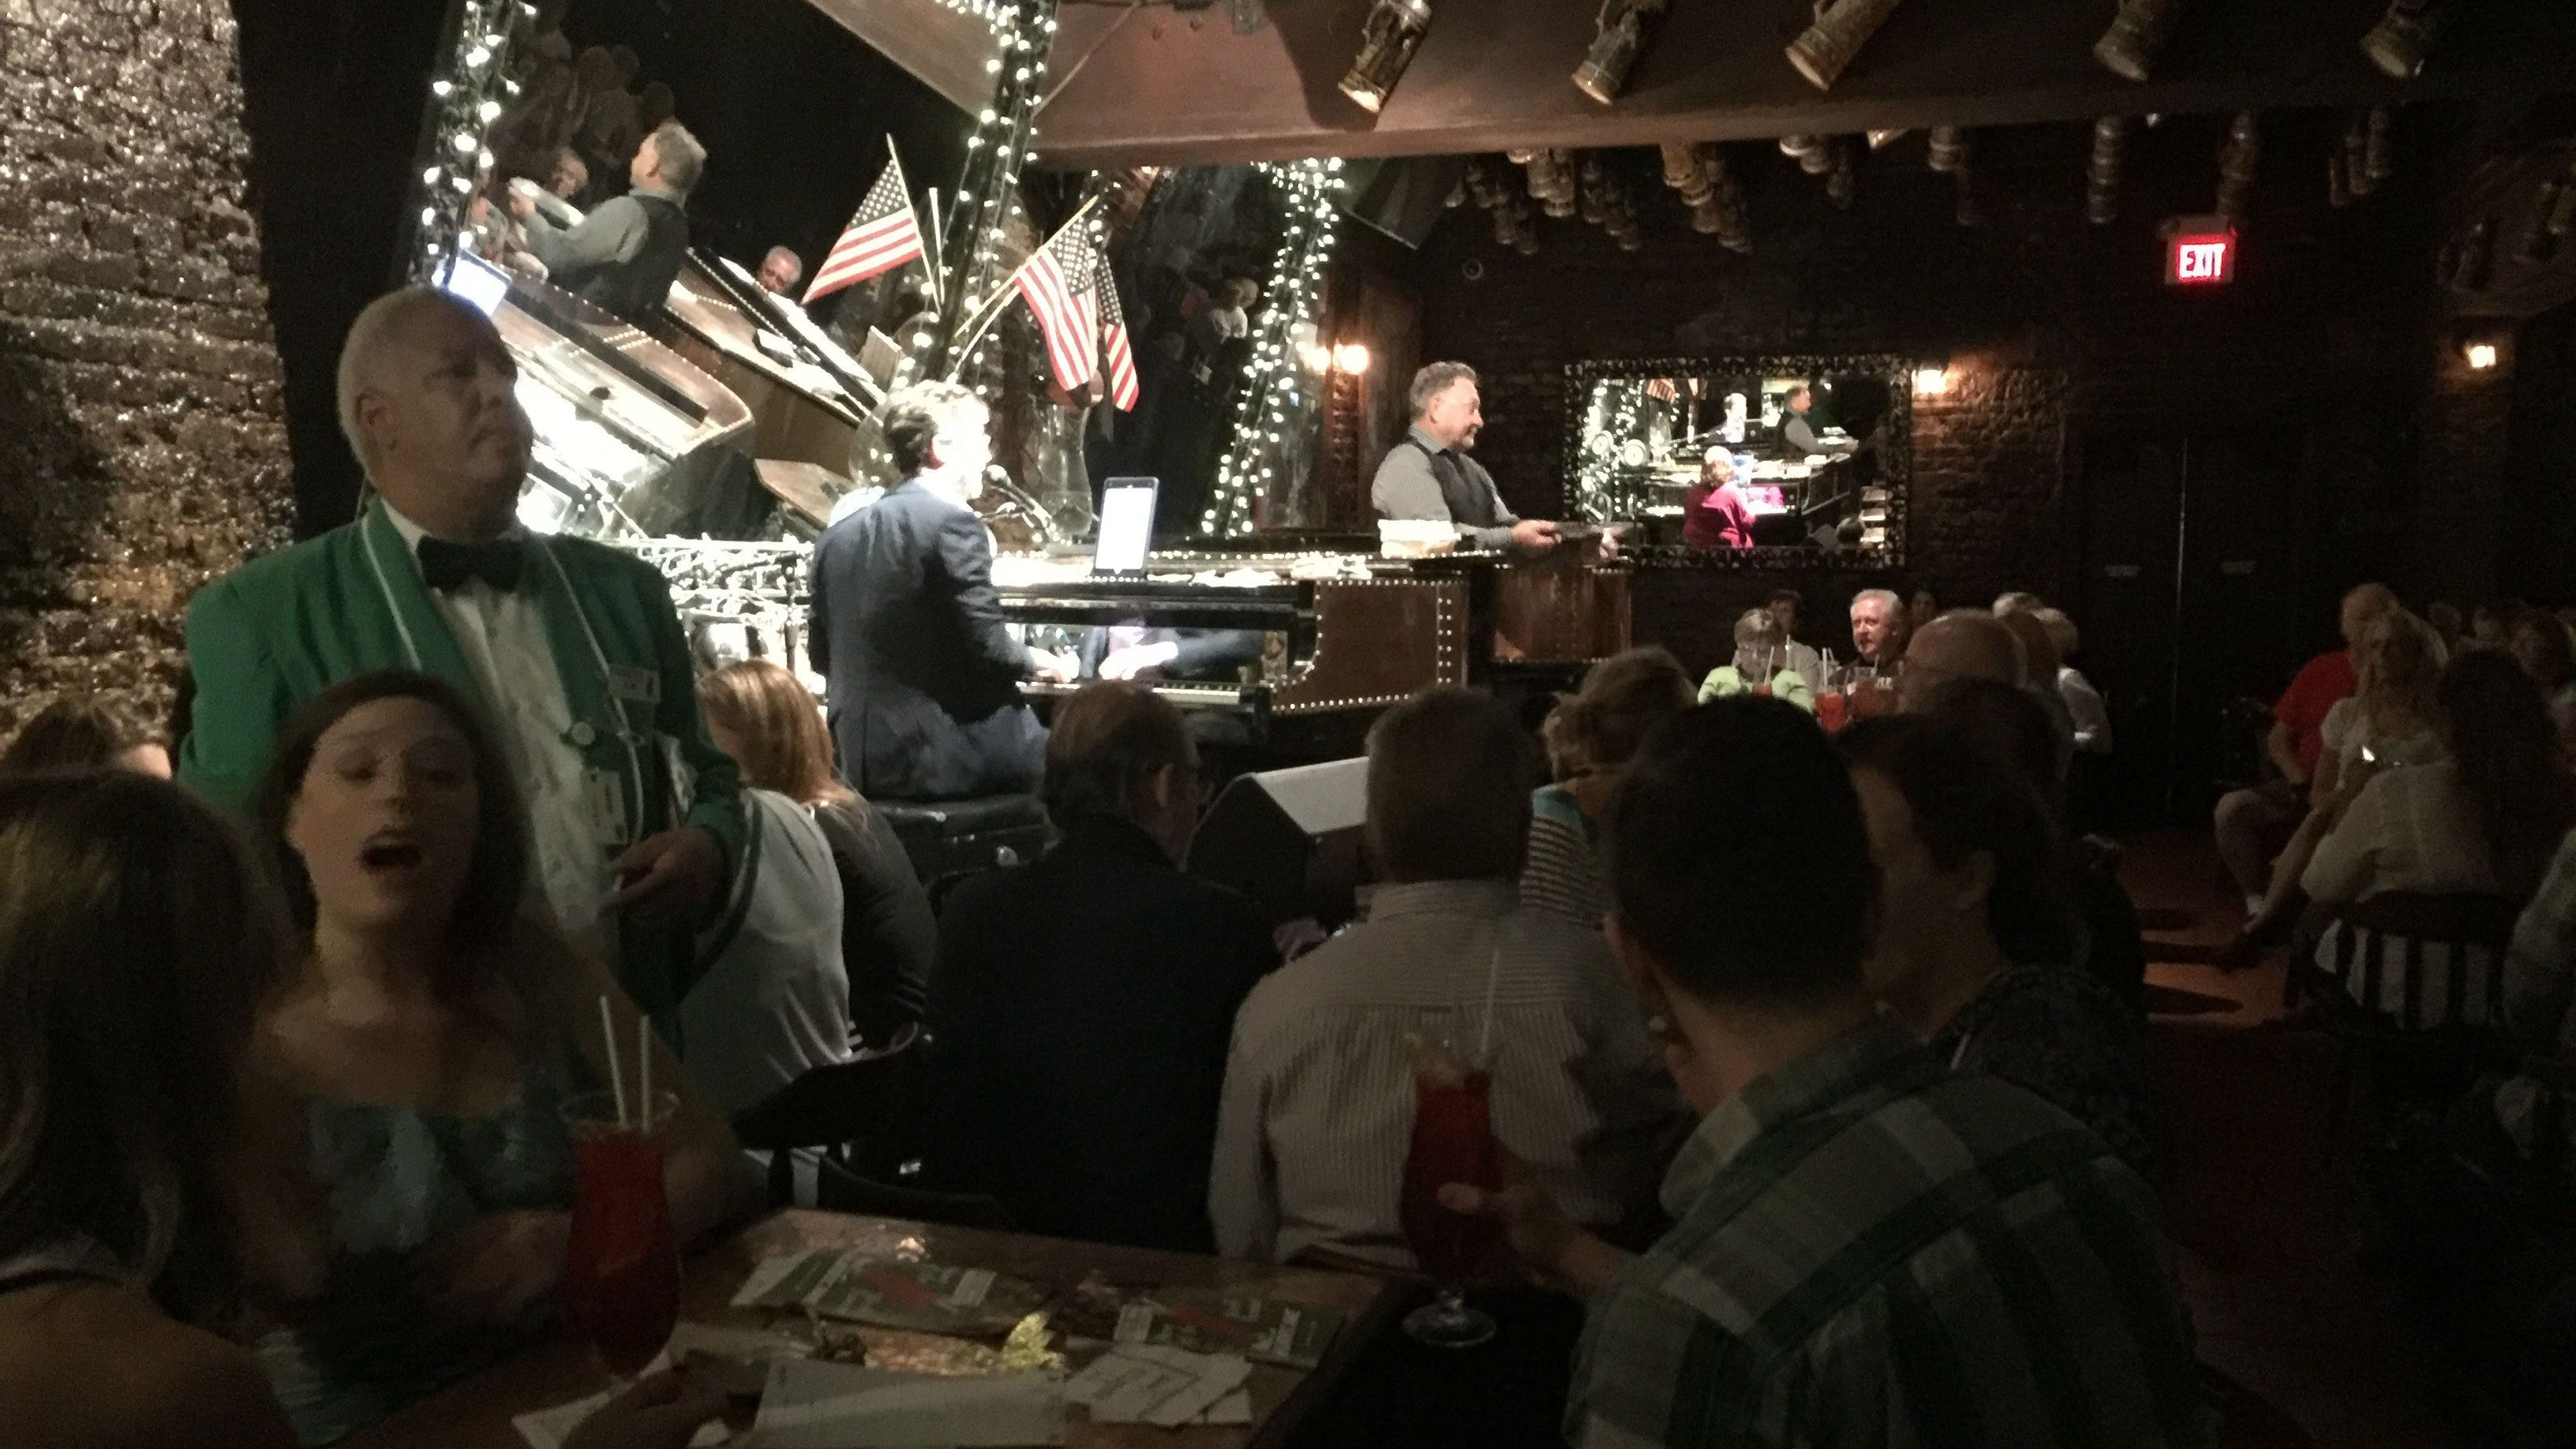 Packed bar with live music performance in New Orleans